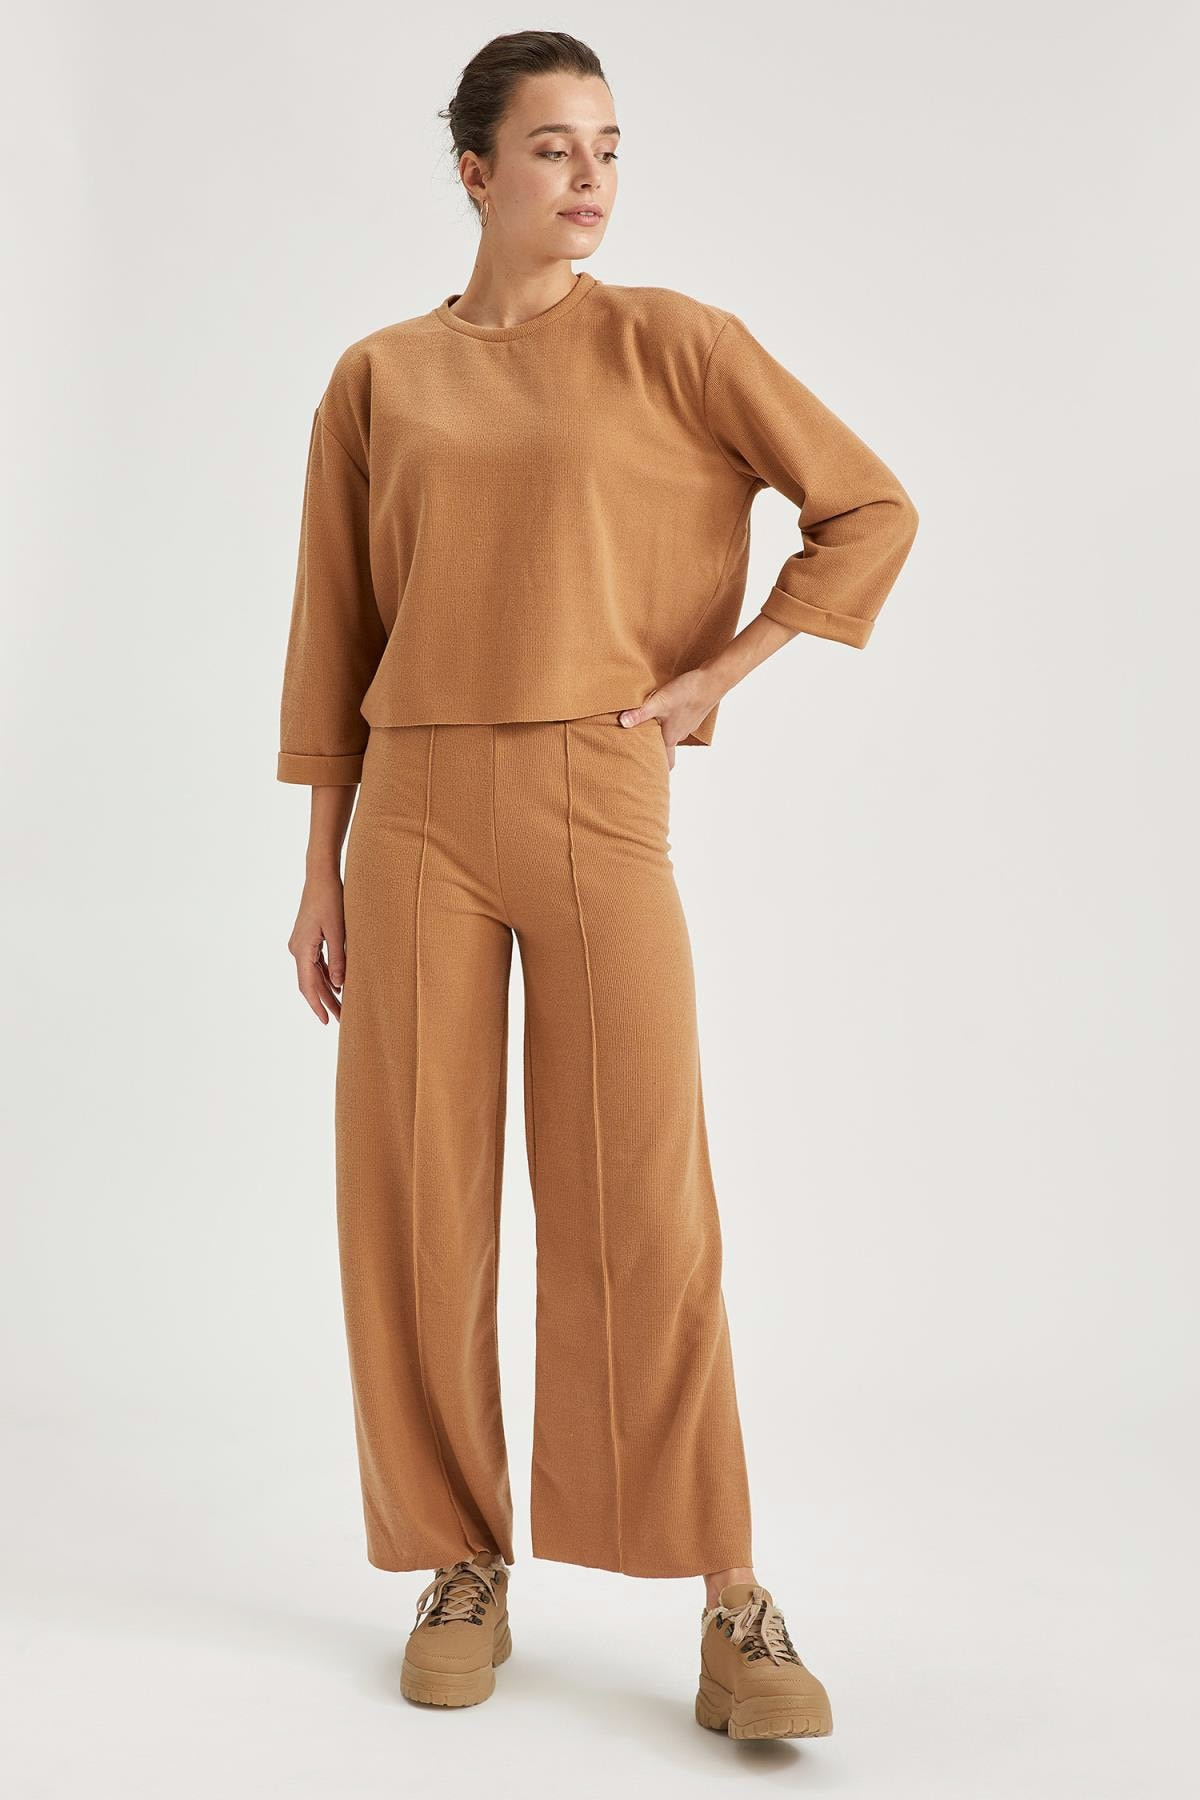 Woman with Brown Knitted Palazzo Pants Wheel Women's Islamic Clothing Pants